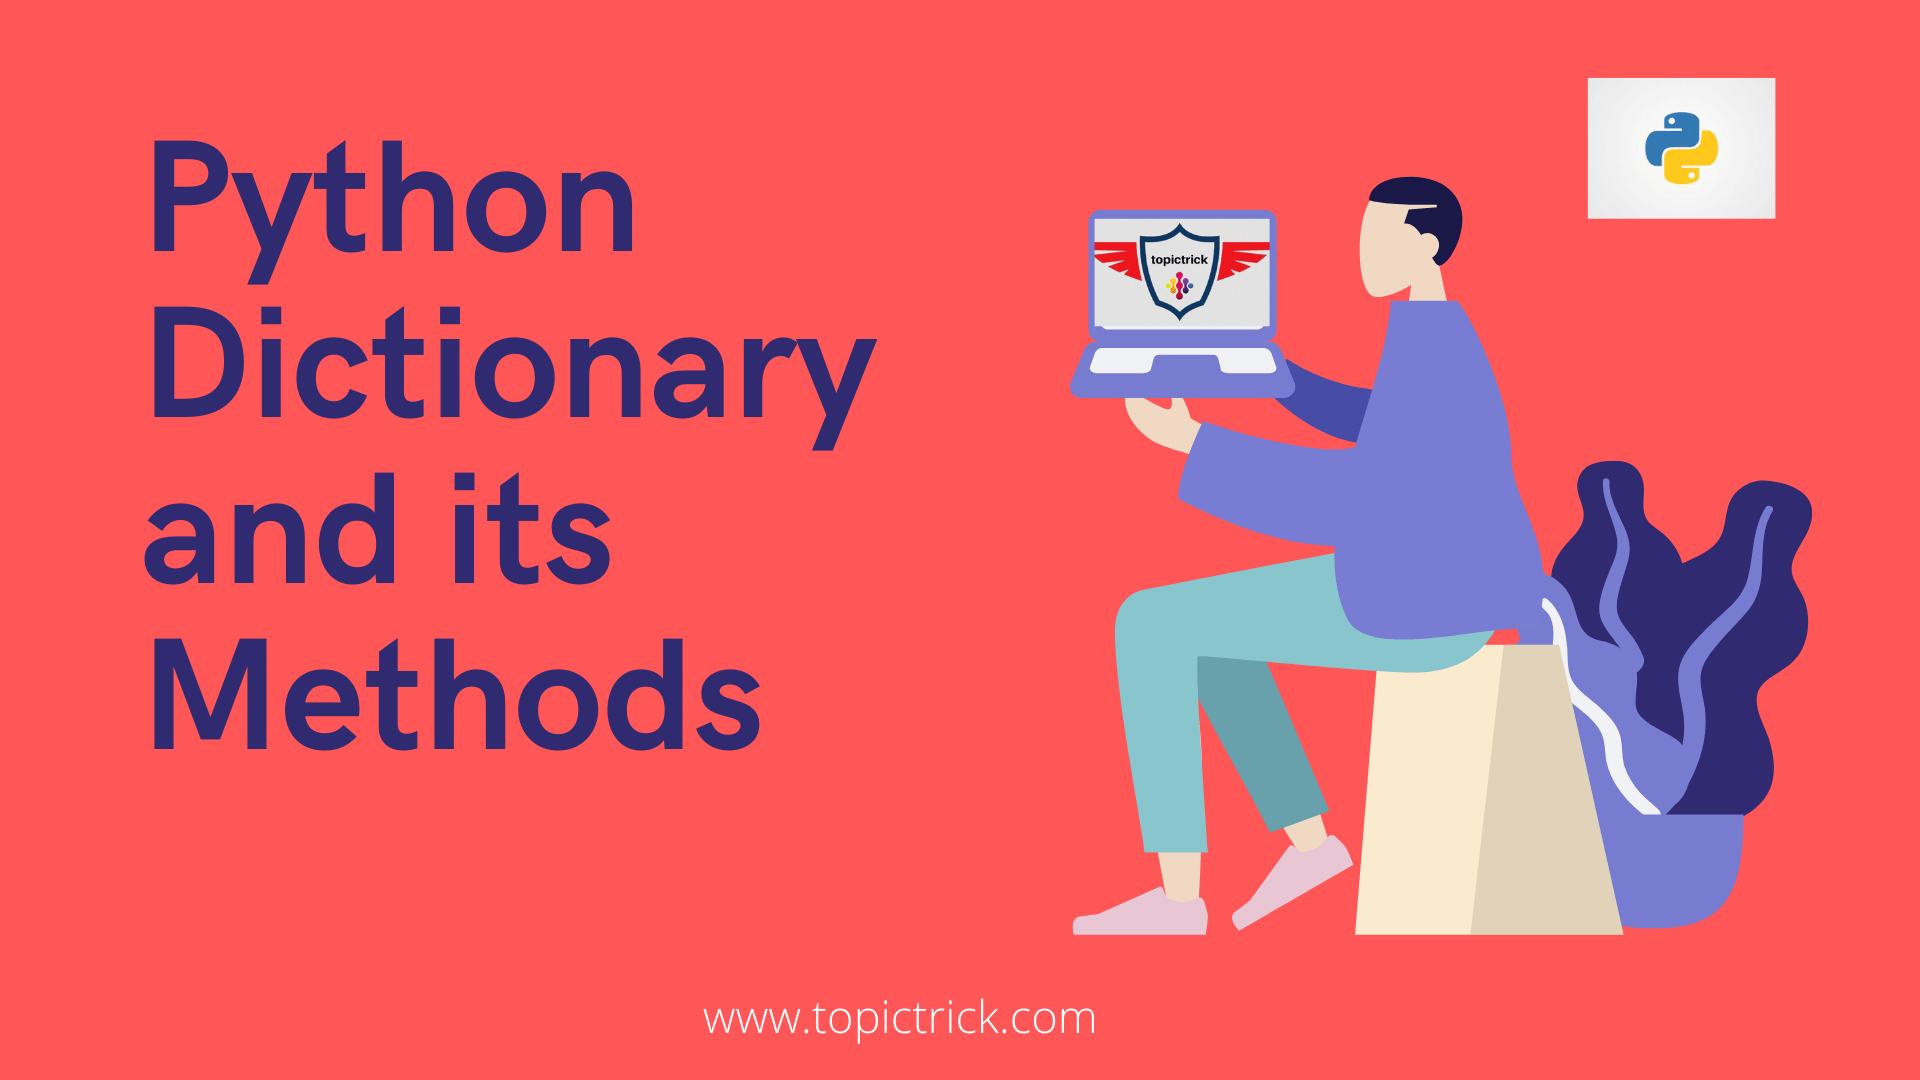 Master Python Dictionary and its methods | 6 mins read